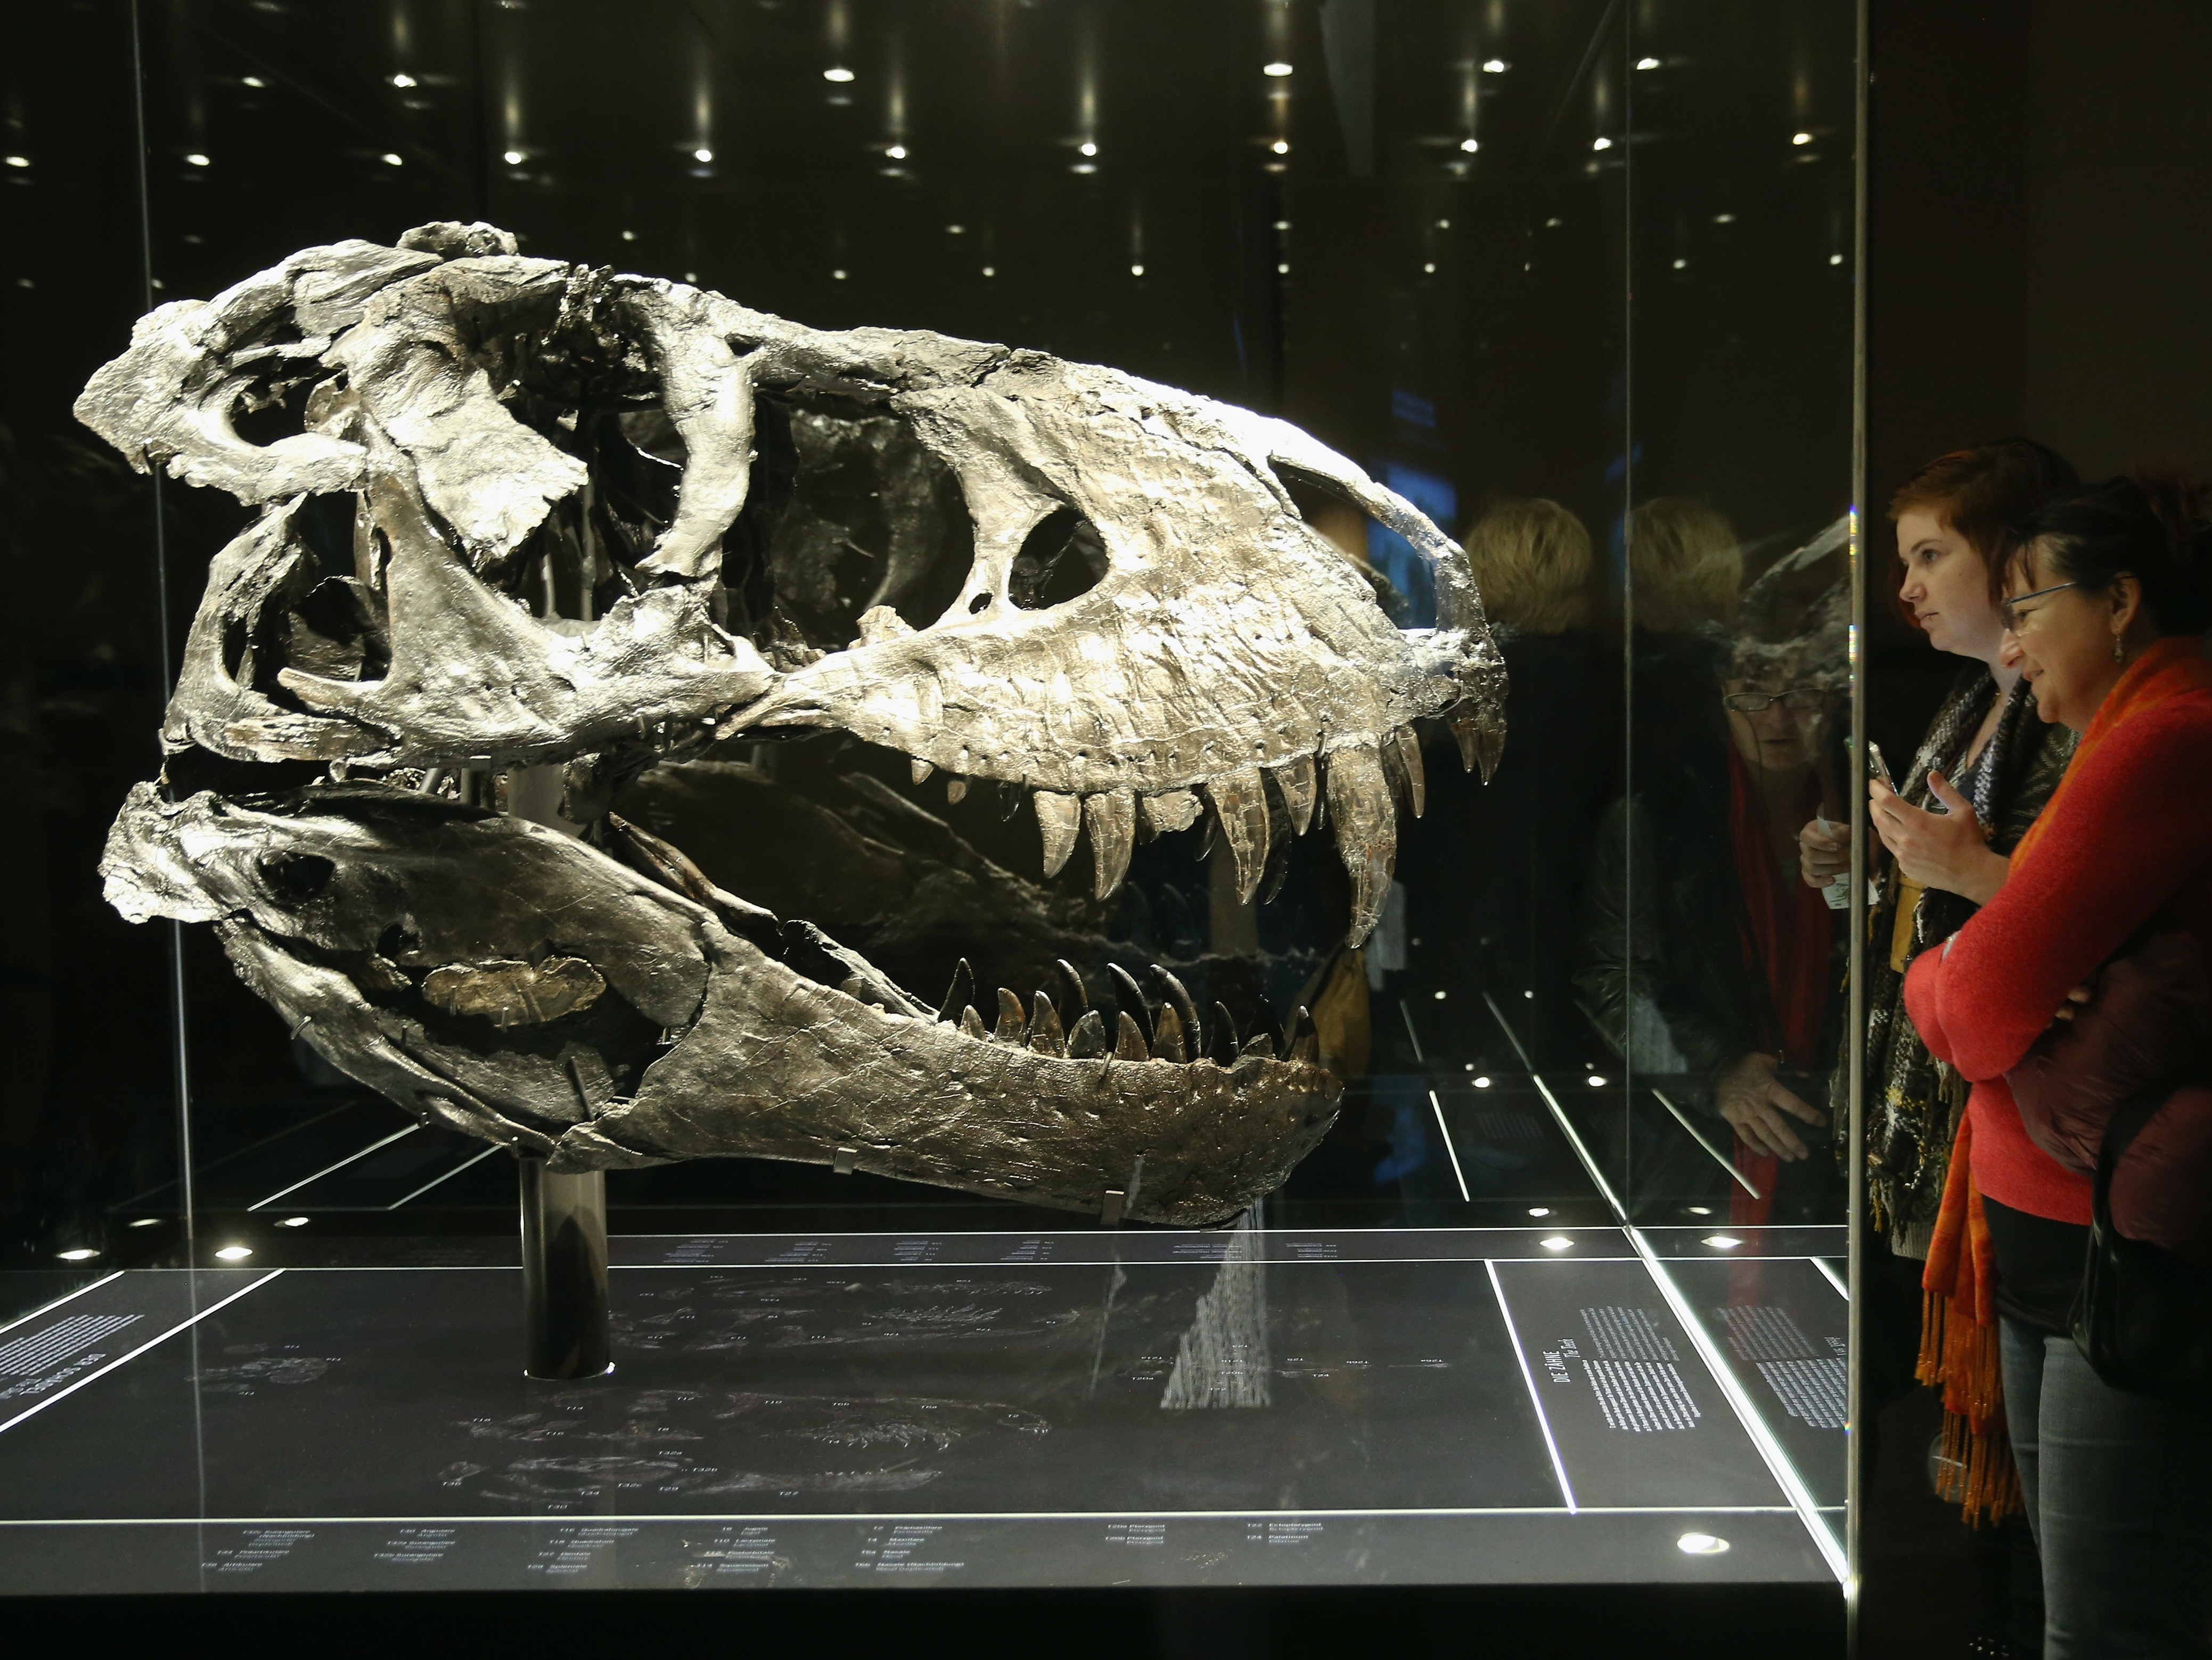 BERLIN, GERMANY - DECEMBER 17:  Visitors look at the original skull, which, due to its weight, had to be exhibited separately from the skeleton, of Tristan the Tyrannosaurus Rex on the first day Tristan was exhibited to the public at the Museum fuer Naturkunde (Natural History Museum) on December 17, 2015 in Berlin, Germany. The skeleton, unearthed in the U.S. state of Montana in 2012, is among the best-preserved large dinosaur skeletons ever found. Tristan is approximately 66 million years old, is 12 meters long and is the first complete Tyrannosaurus Rex to ever be displayed in Europe. Tristan will be on exhibition at the Berlin natural history museum for the next three years.  (Photo by Sean Gallup/Getty Images)